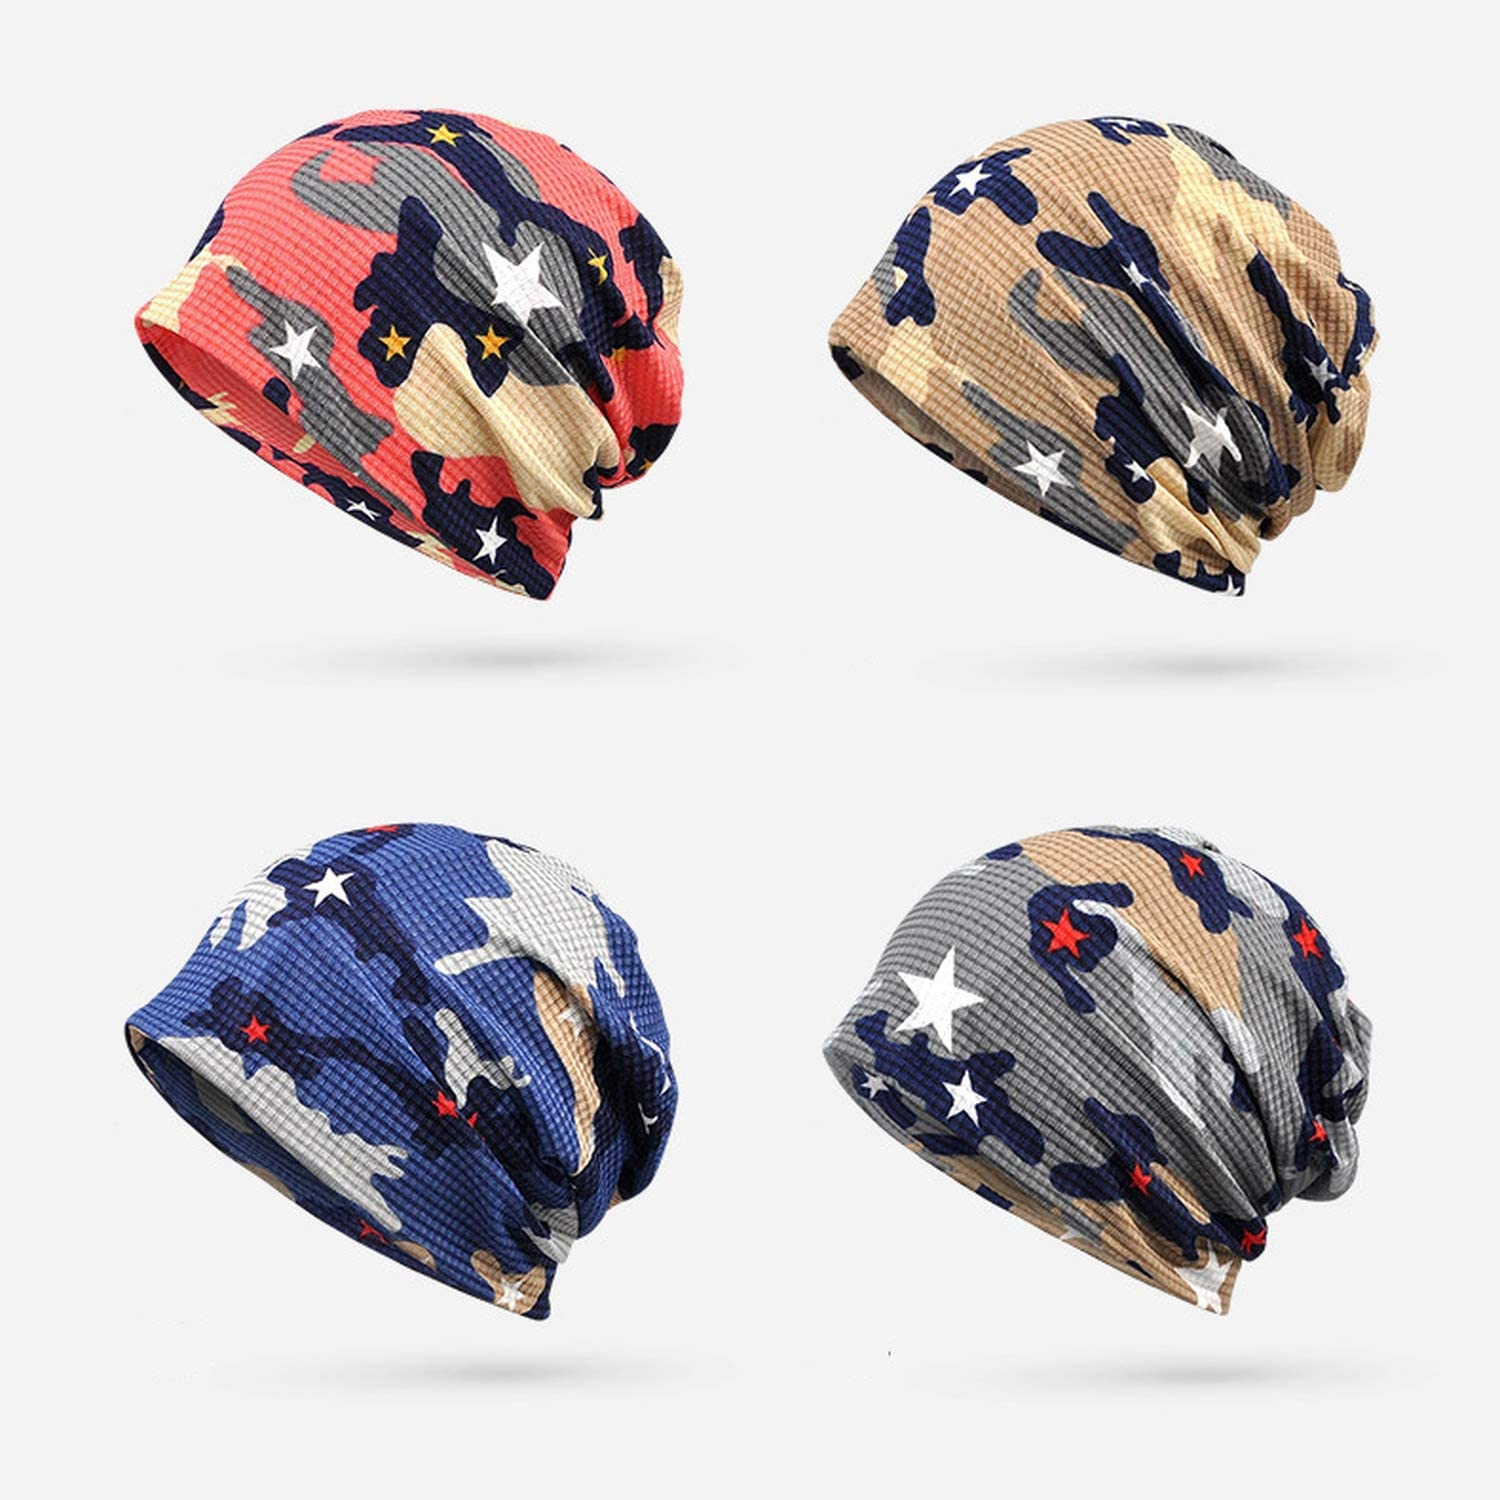 MEIZOKEN Thin Autumn Winter Beanies for Women Men Hat Hiphop Helmet Liner Sports Camouflage Army Slouchy Baggy Skullie